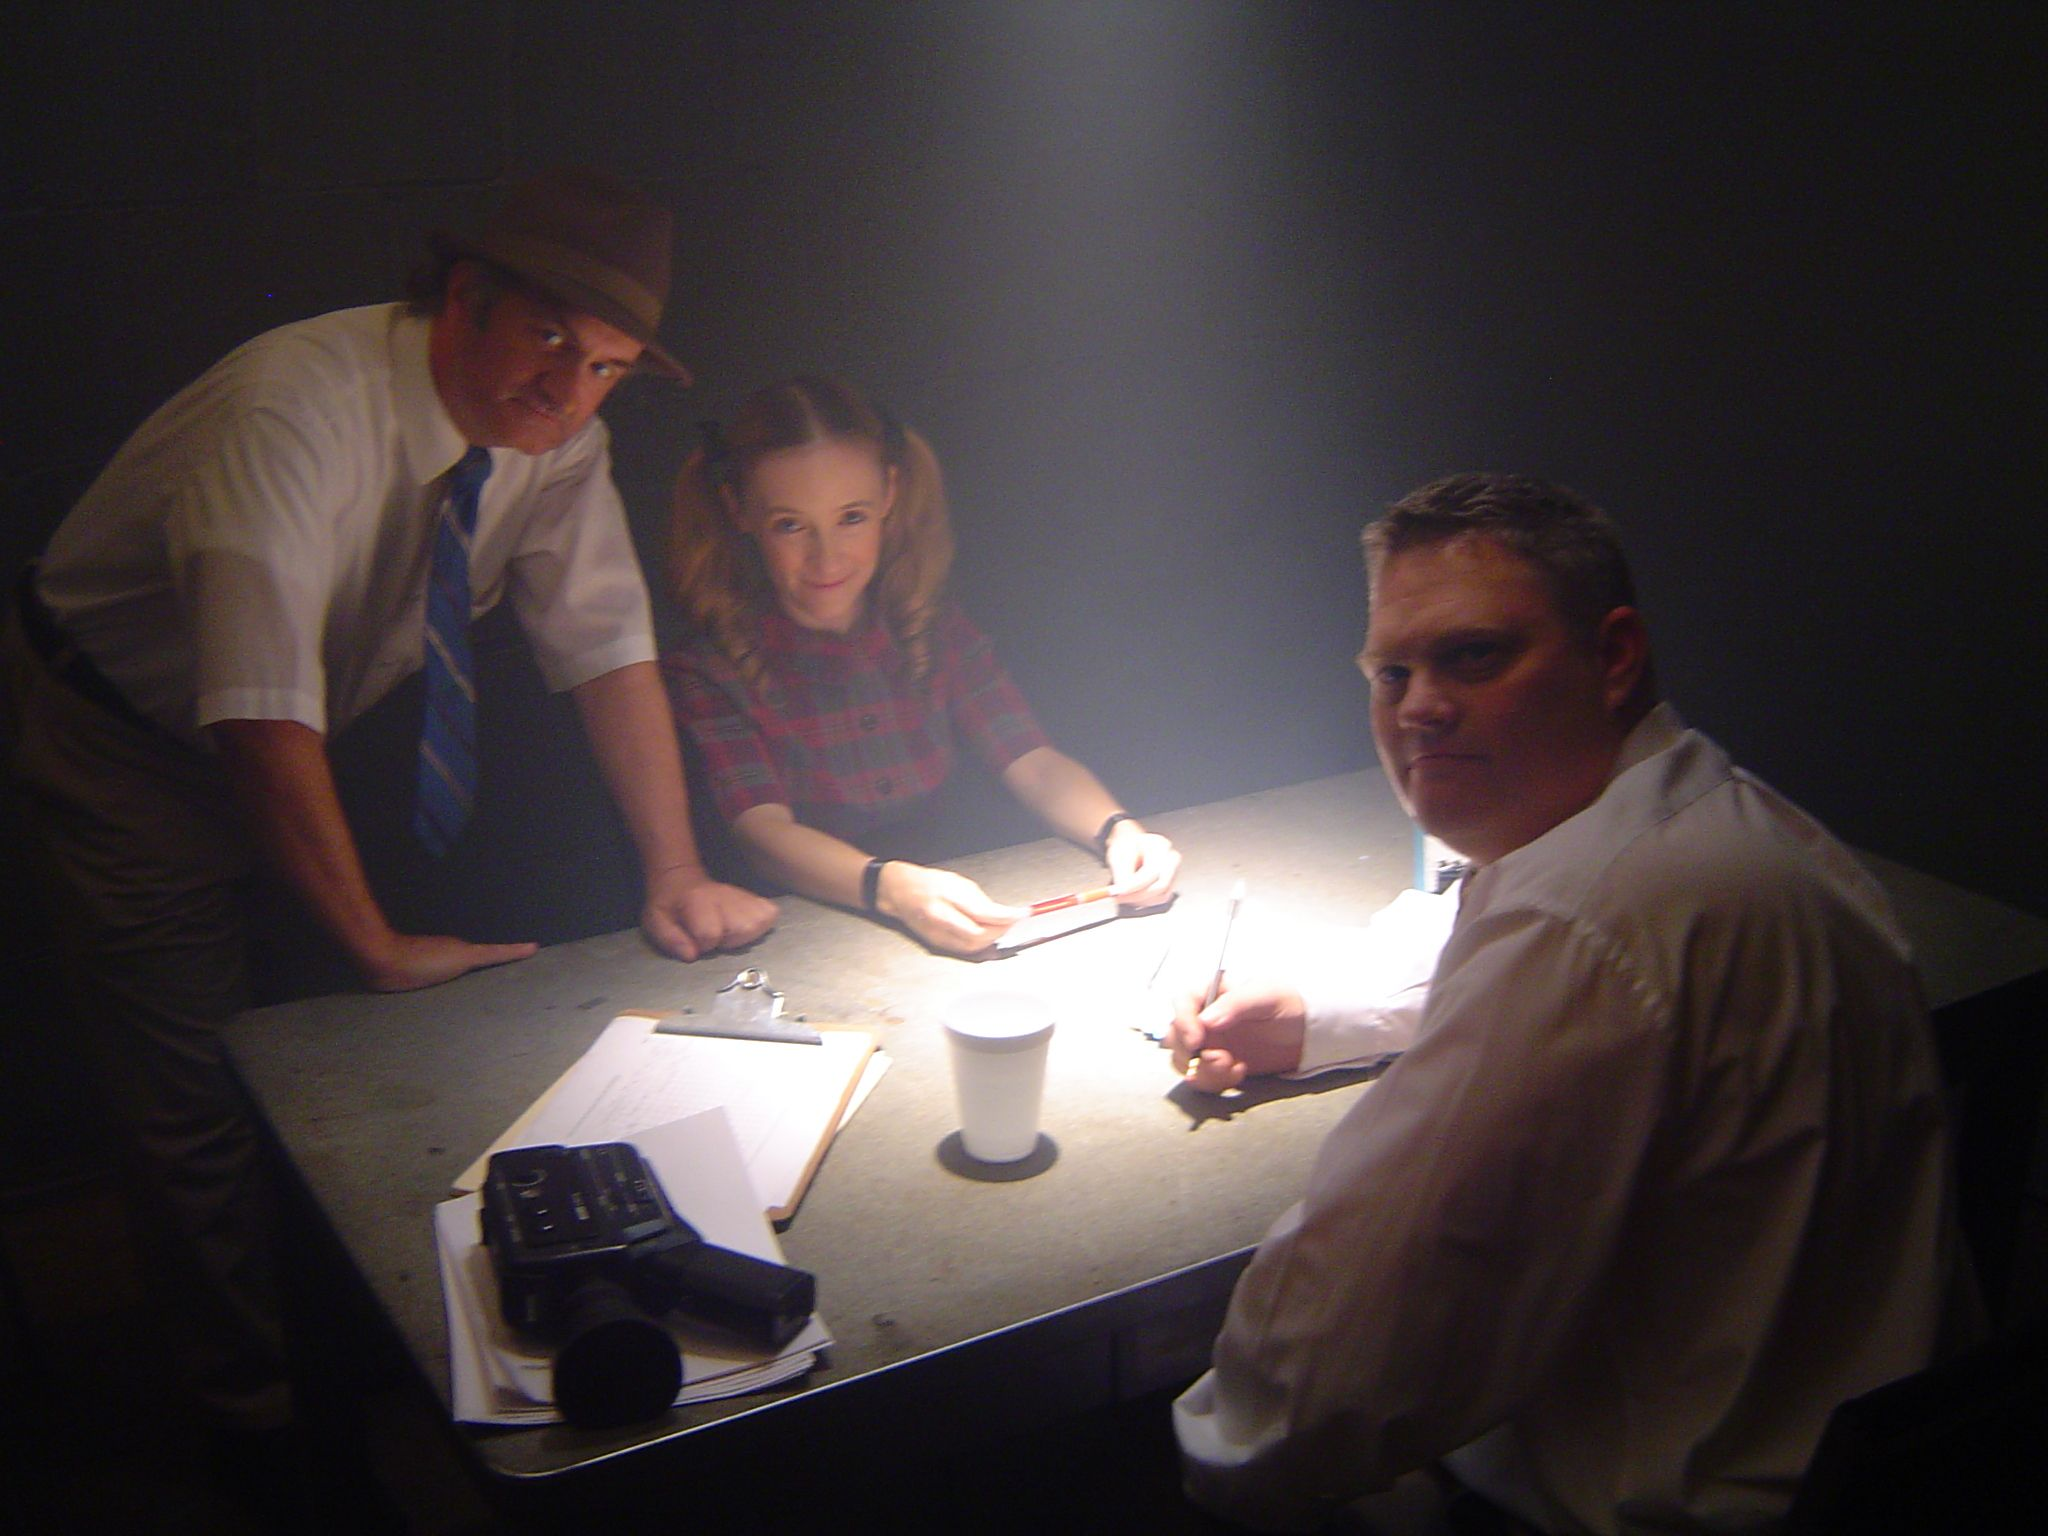 Geoffrey Gould as Detective Tripper with Jonica Patella as Abigail and Rick Timber in Motionless in White's ''Abigail'' music video.